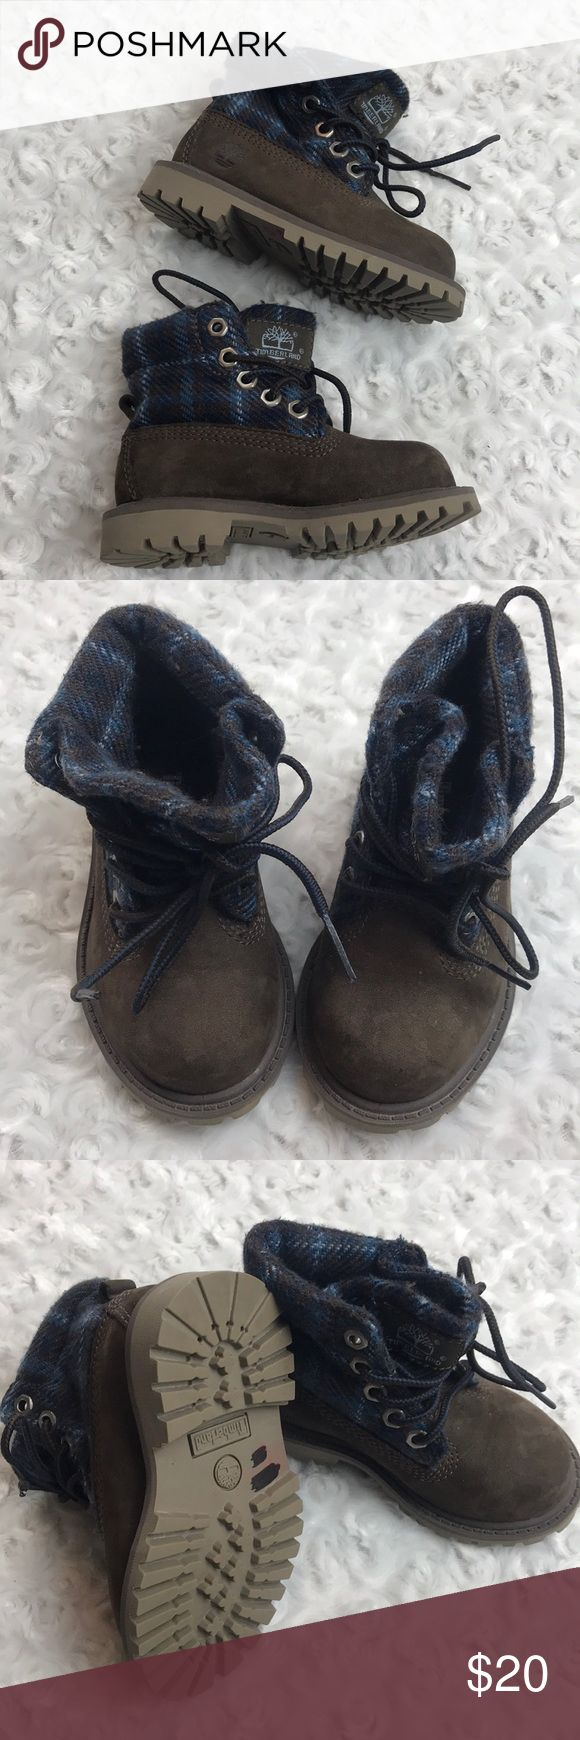 Size 5 toddler timberland boots brown flannel Very good condition Timberland Shoes Boots